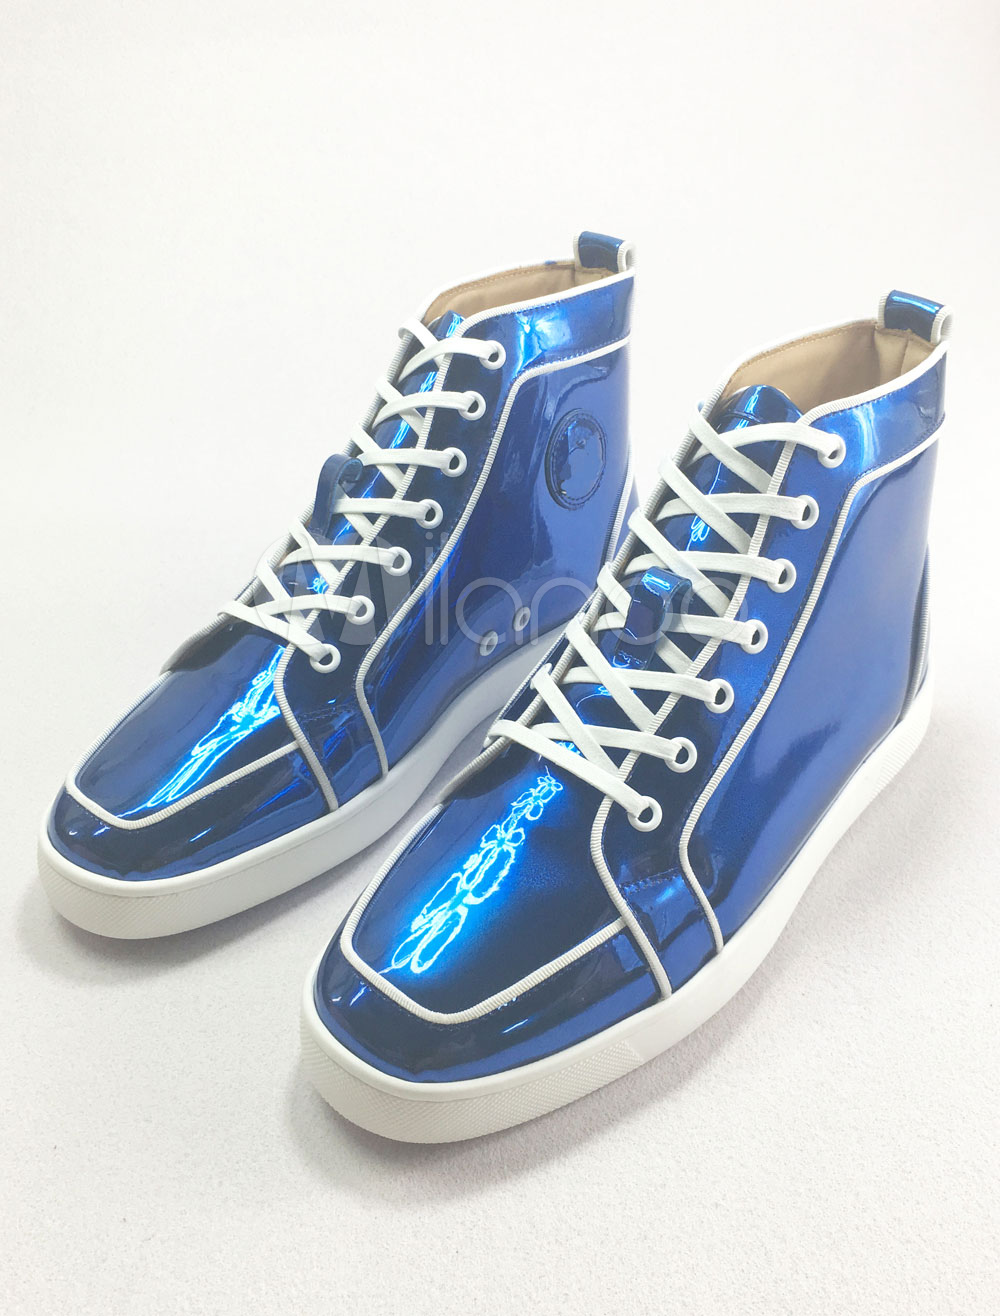 Men's Blue Sneakers Leather Round Toe Lace Up High Top Skate Shoes thumbnail